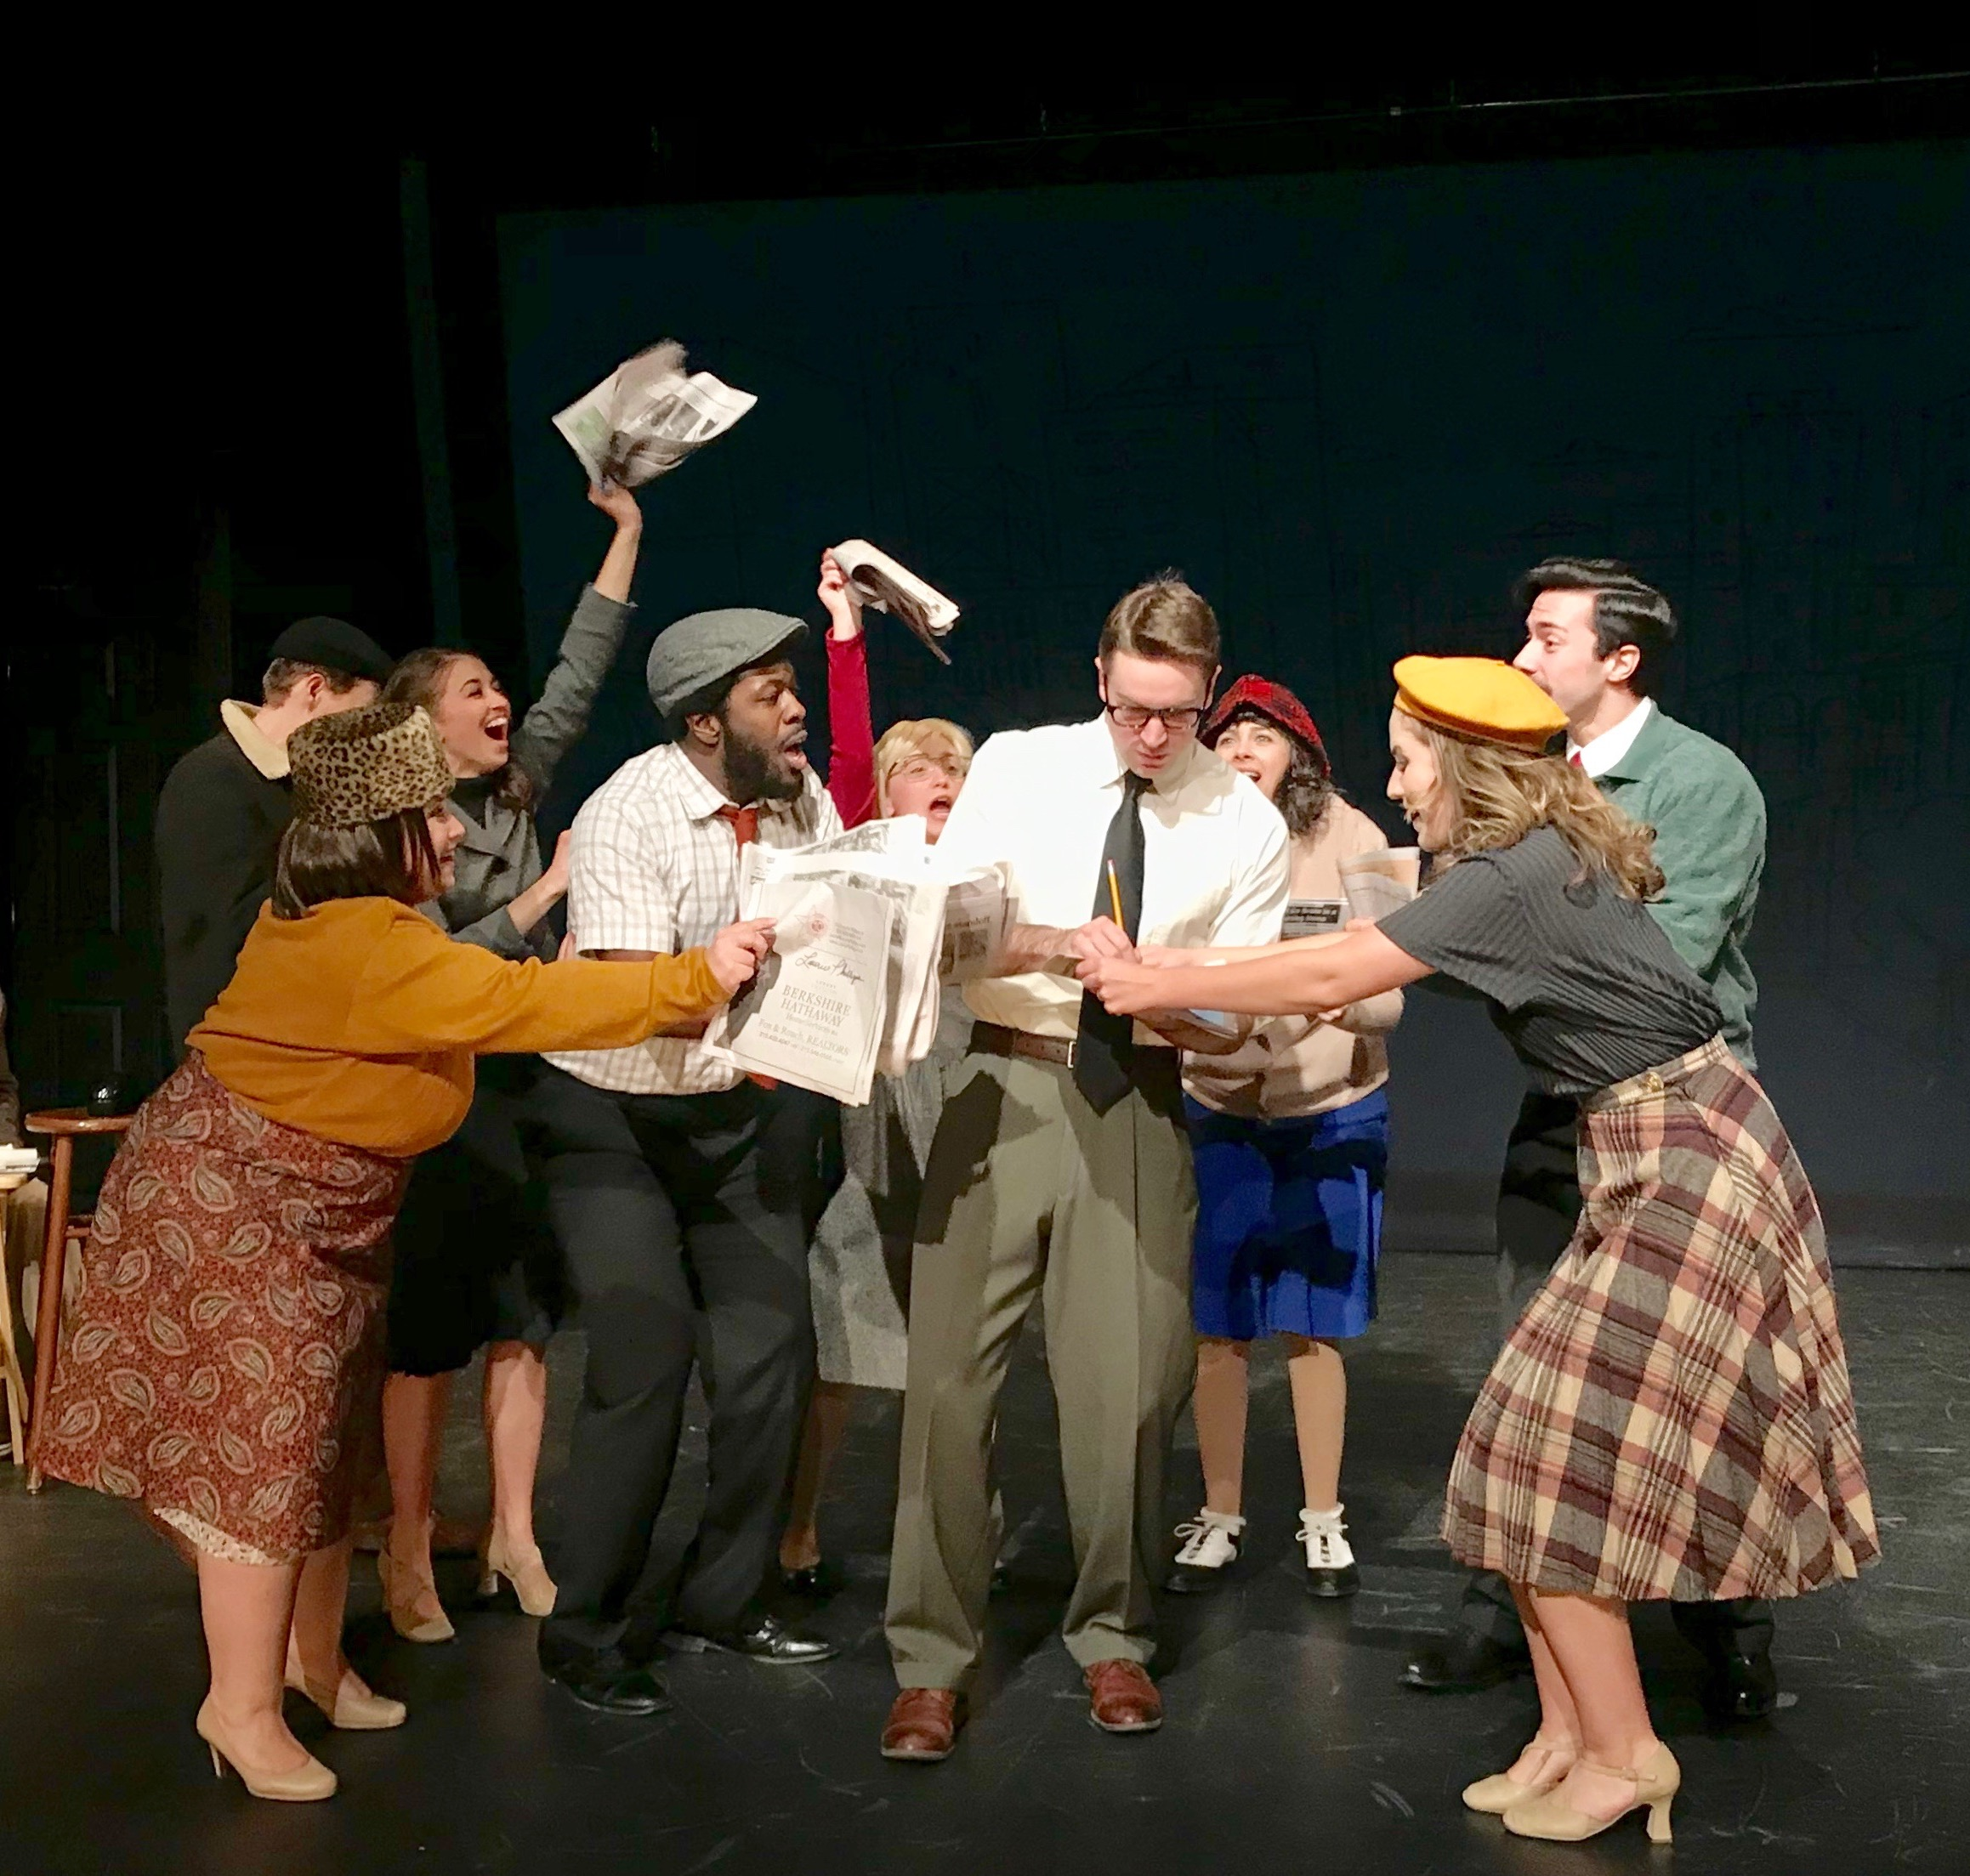 "(L to R) Kyle McClellan, Michelle Caniglia, Beth DeMichele, Cordara Newson, Jillian Mauro, Alex Temple Ward, April Lavalle, Monet Sabel, and Matthew Tiberi in ""Sparky."""